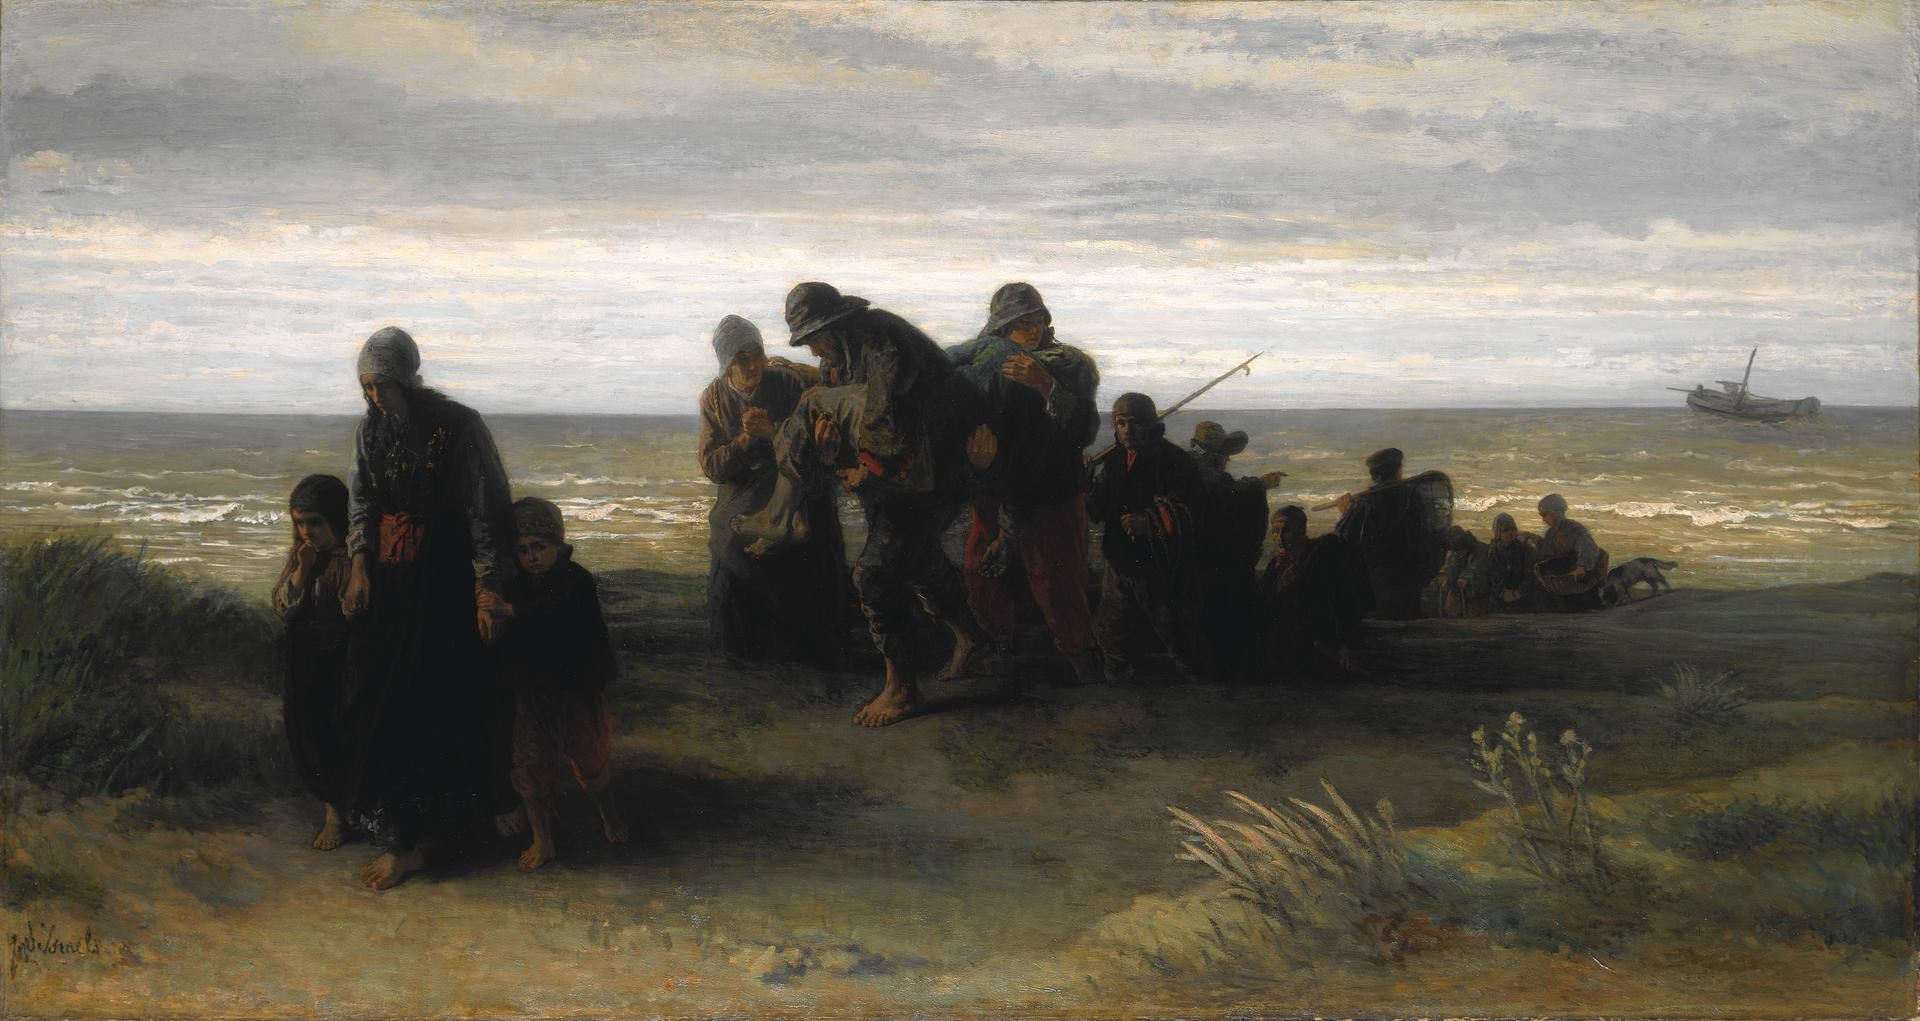 Fishermen carrying a Drowned Man by Jozef Israëls